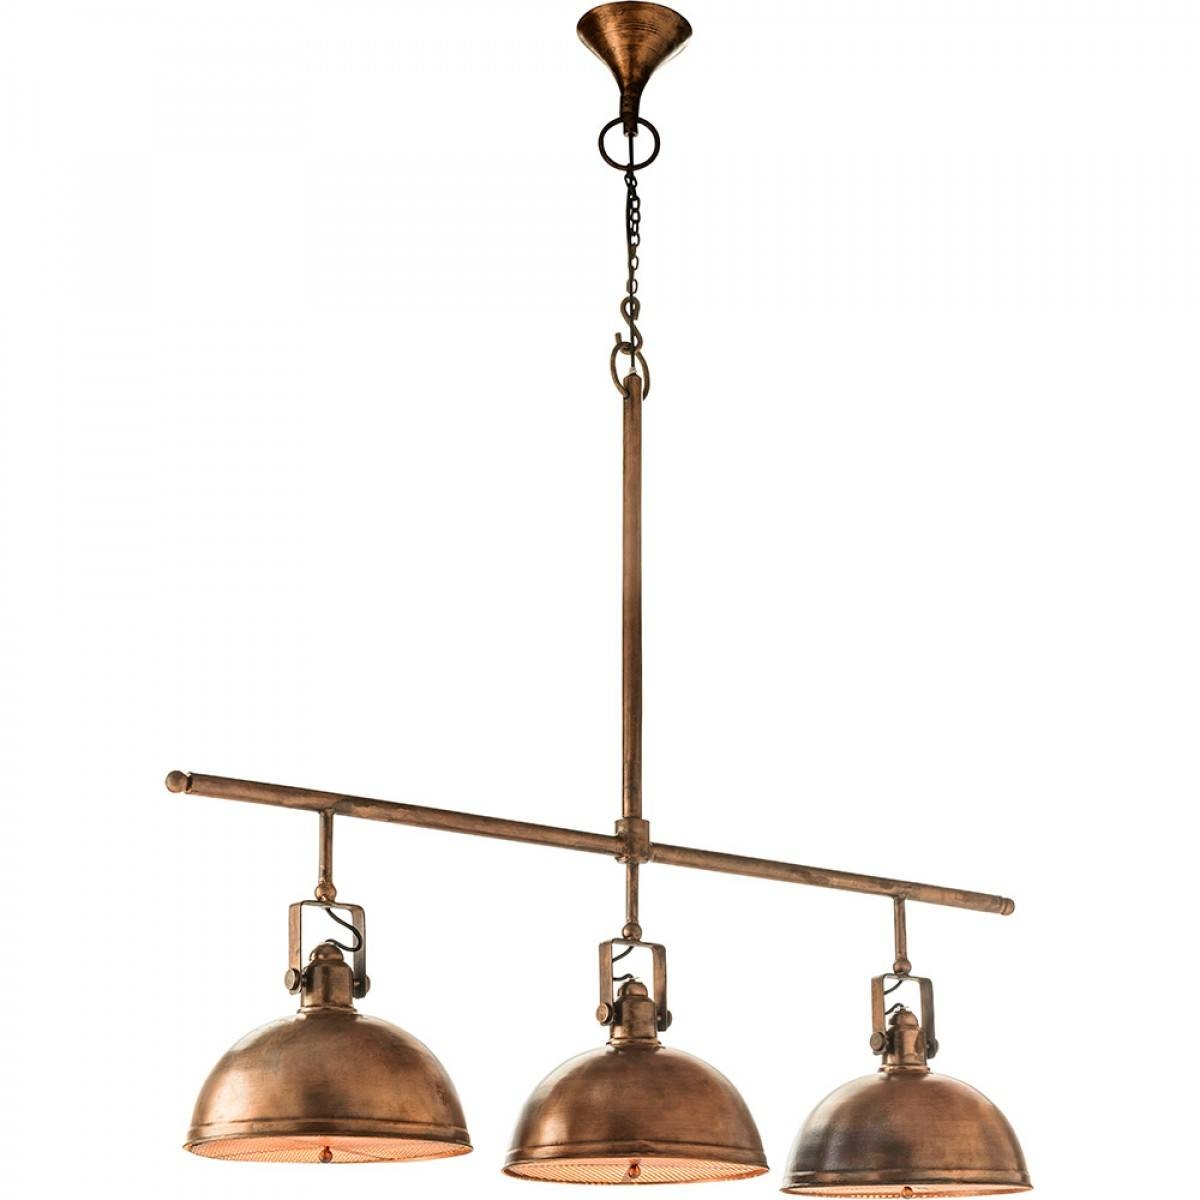 3 Light Retro Servery   Antique Copper Finish Within Landmark Lighting Chadwick Pendants (Photo 13 of 15)